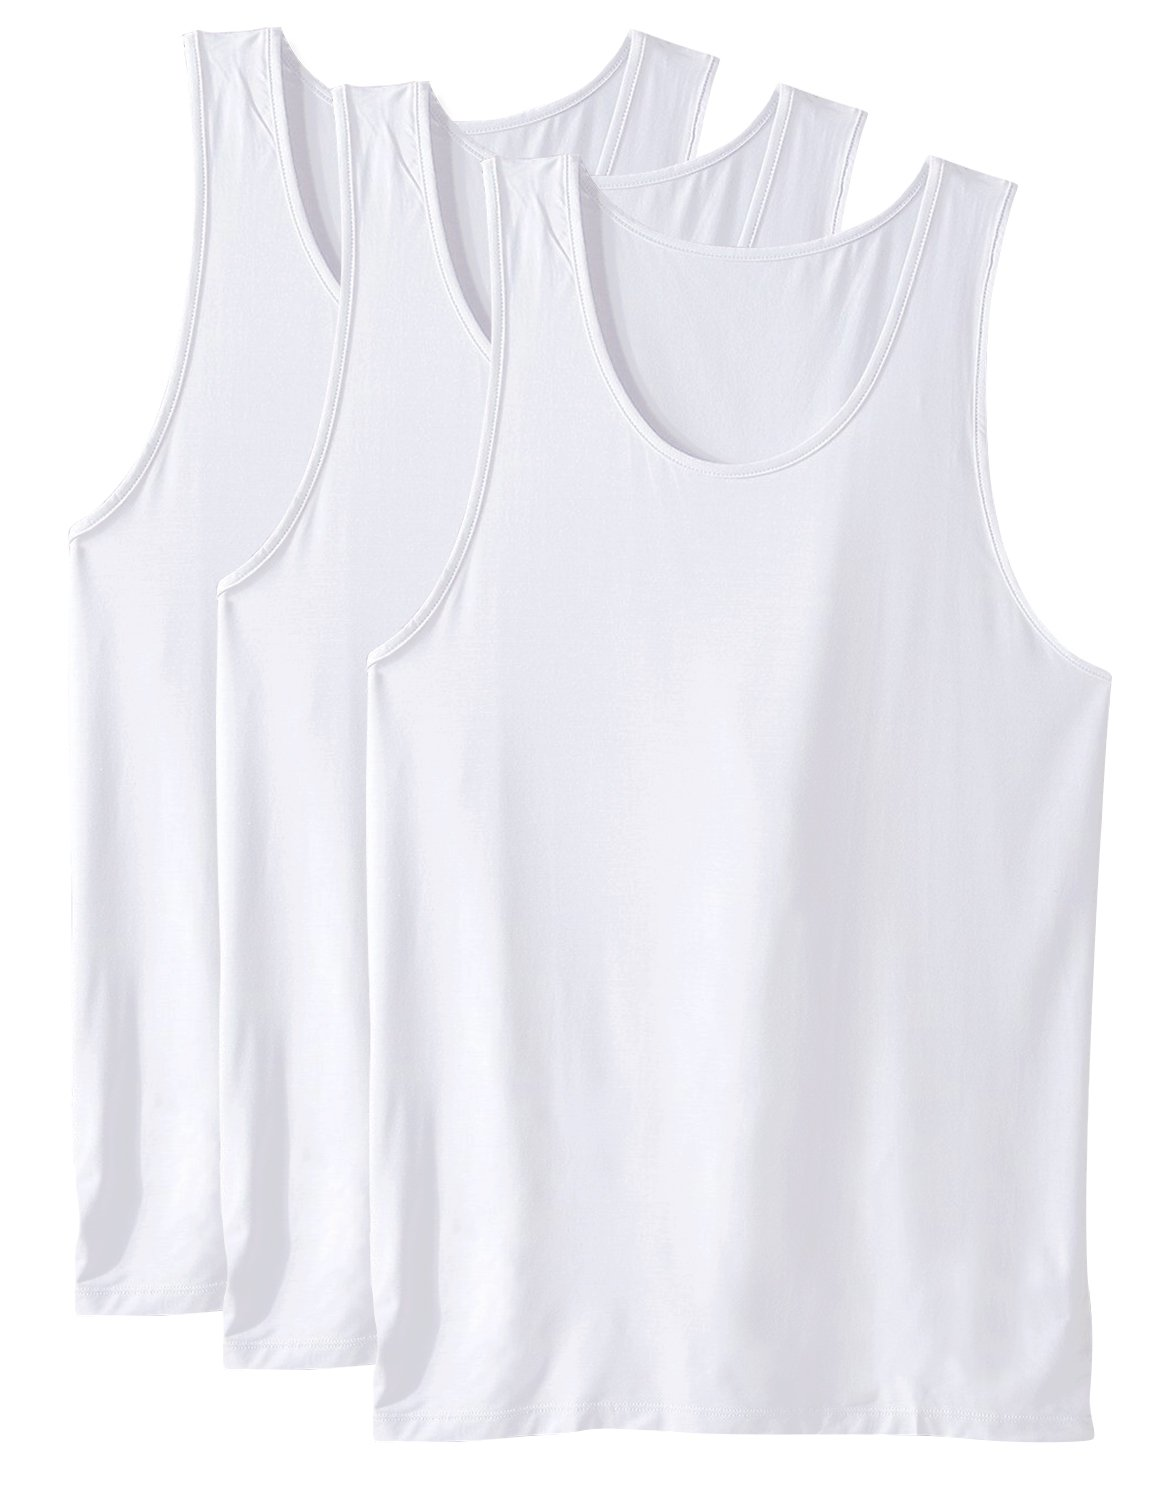 David Archy Men's 3 Pack Bamboo Rayon Undershirts Crew Neck Tank Tops(White,M) by David Archy